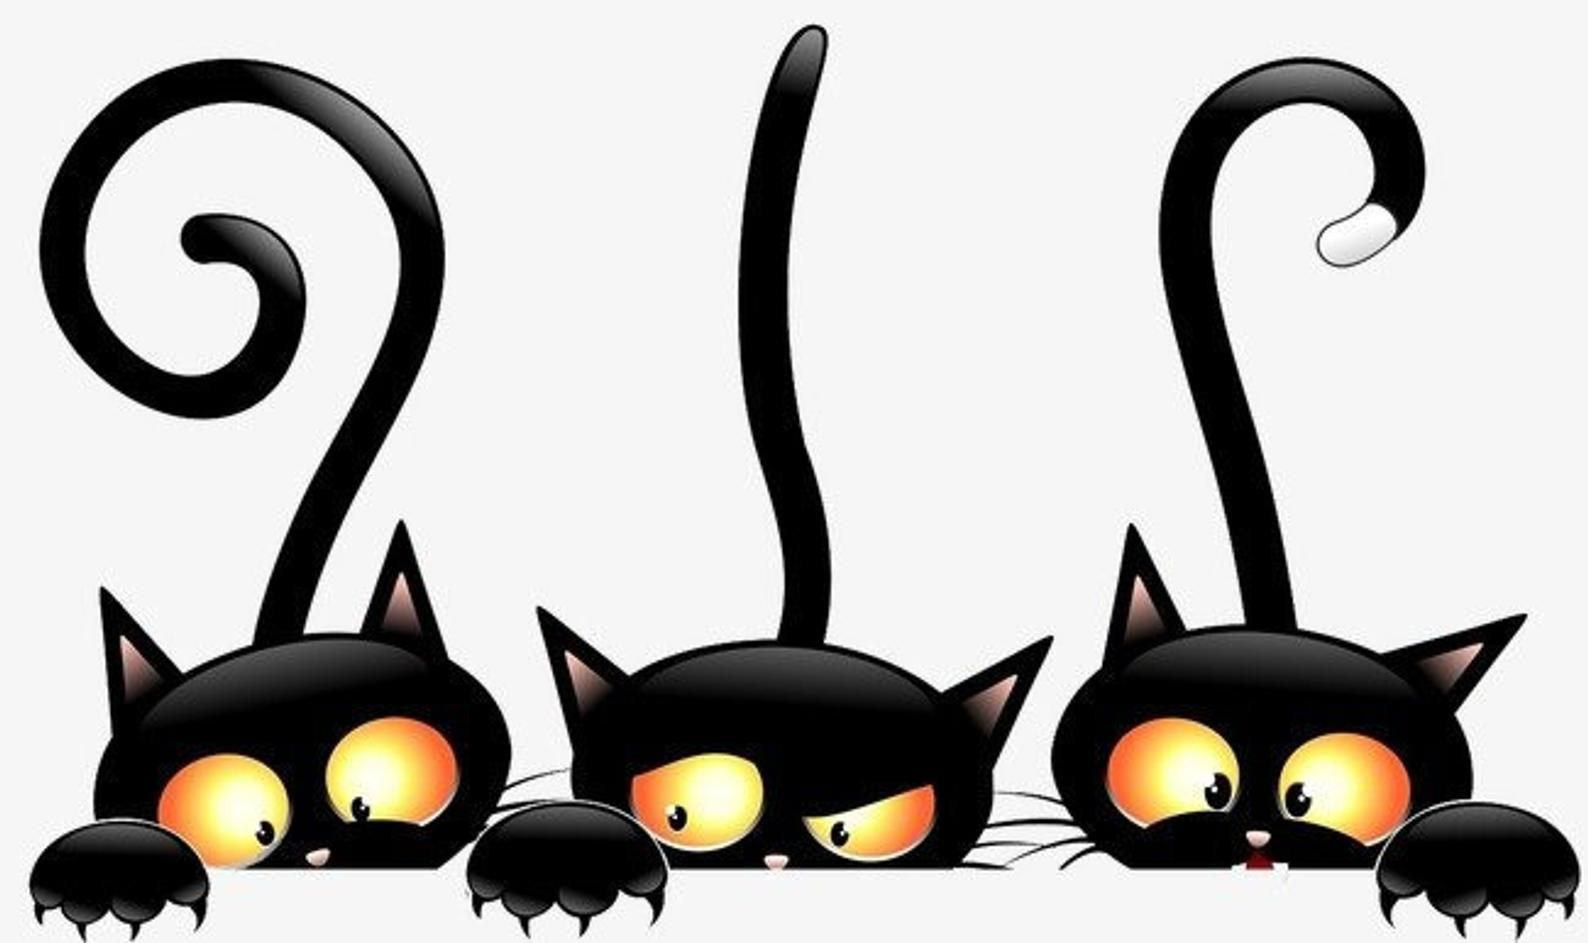 Find the perfect black cat halloween black & white image. 3 Black Cats Counted Cross Stitch Pattern Etsy In 2021 Black Cat Halloween Art Black Cat